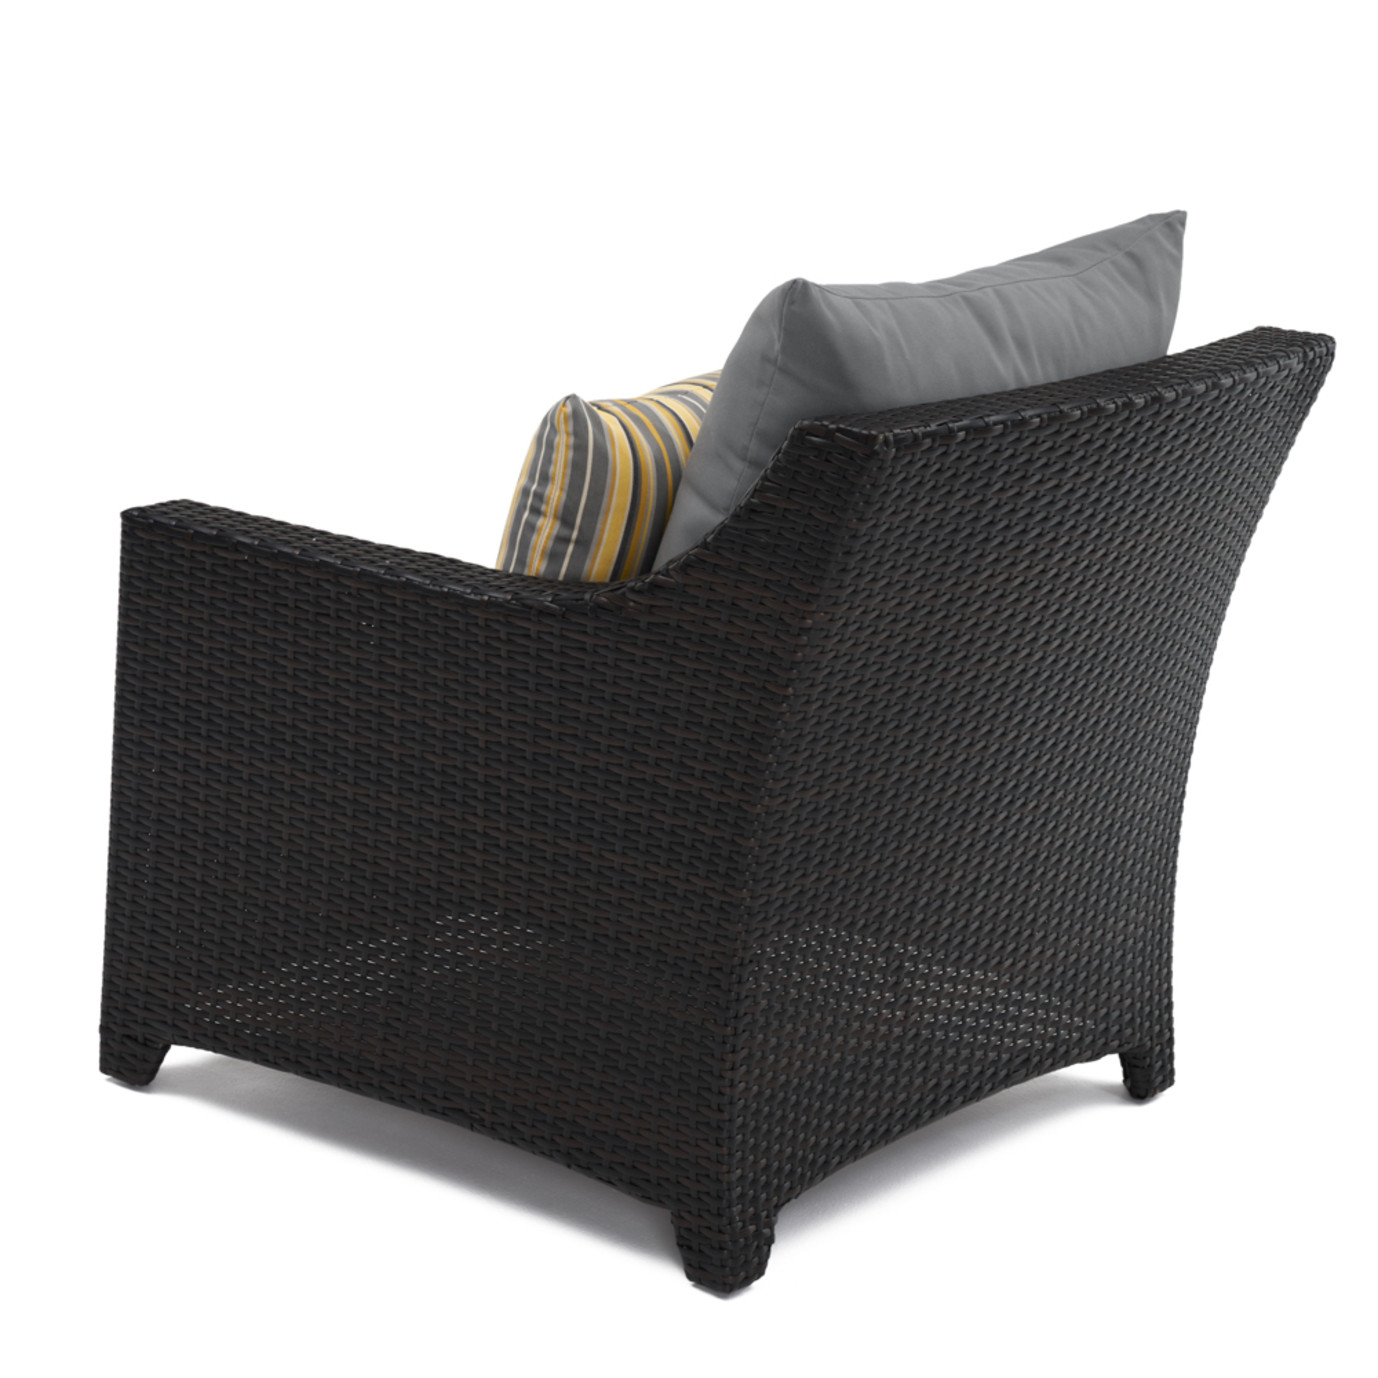 Deco™ Club Chairs - Charcoal Grey